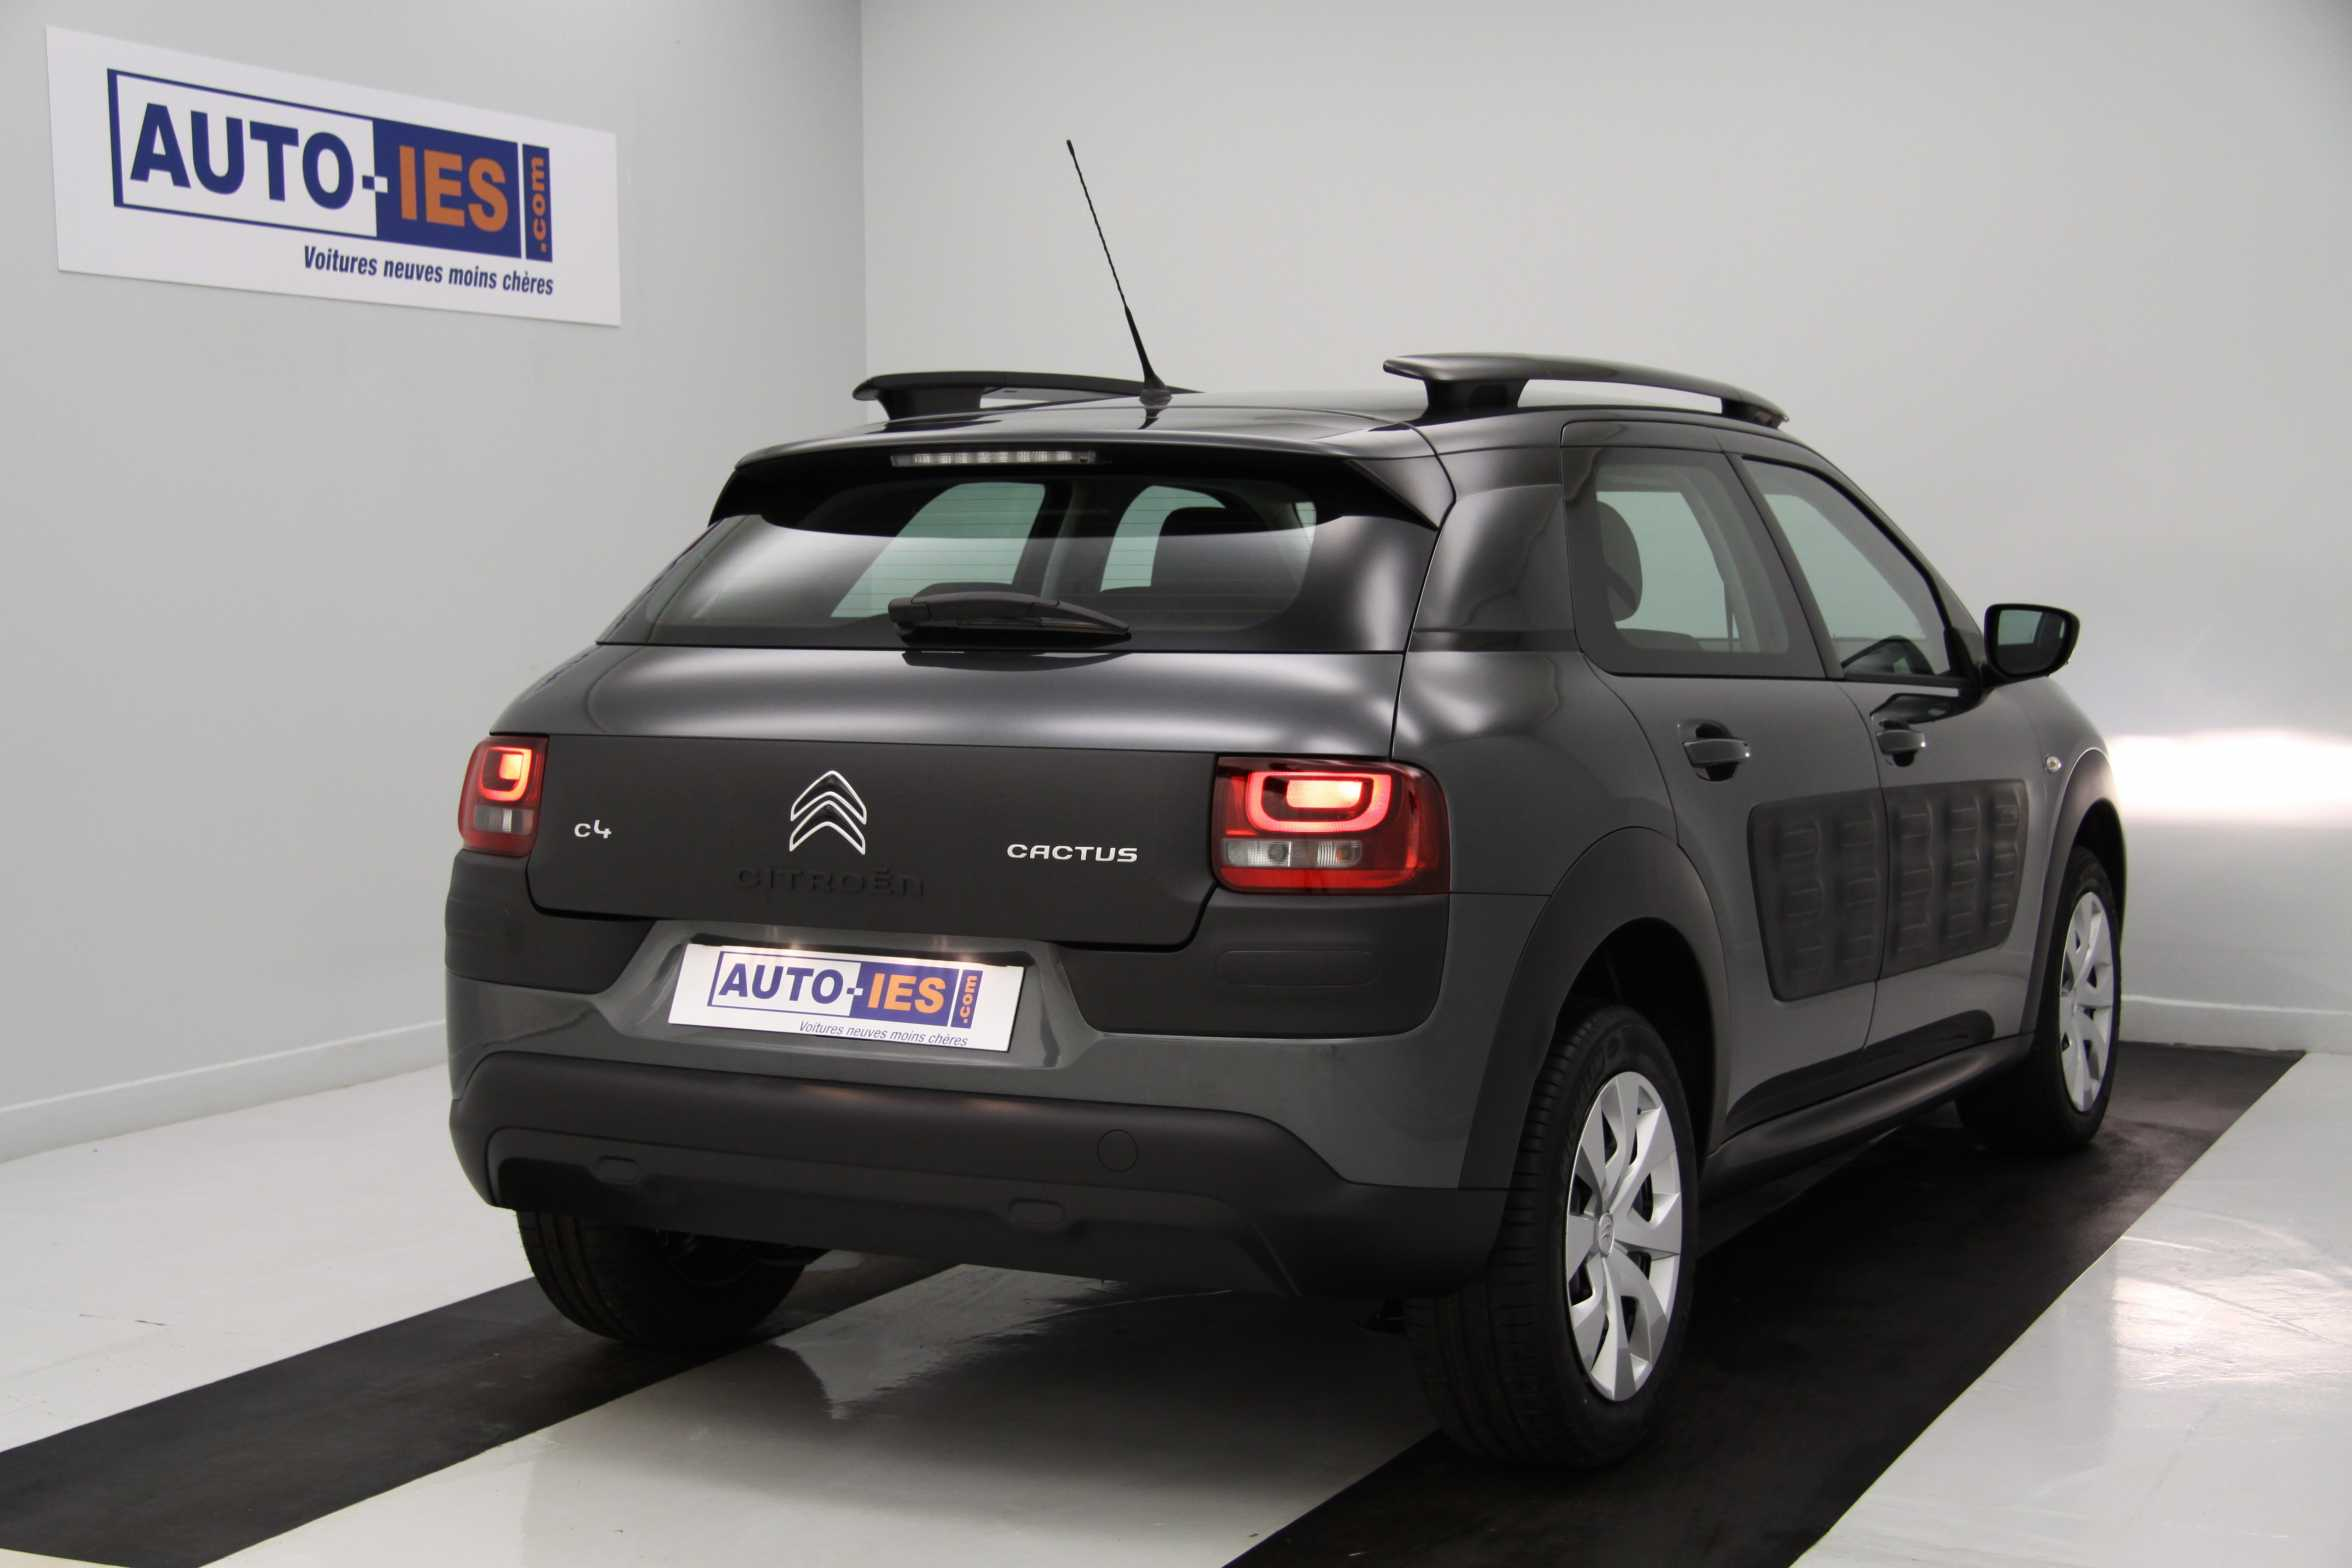 citroen c4 cactus bluehdi 100 s s feel gris shark v hicule de direction avec km avec. Black Bedroom Furniture Sets. Home Design Ideas